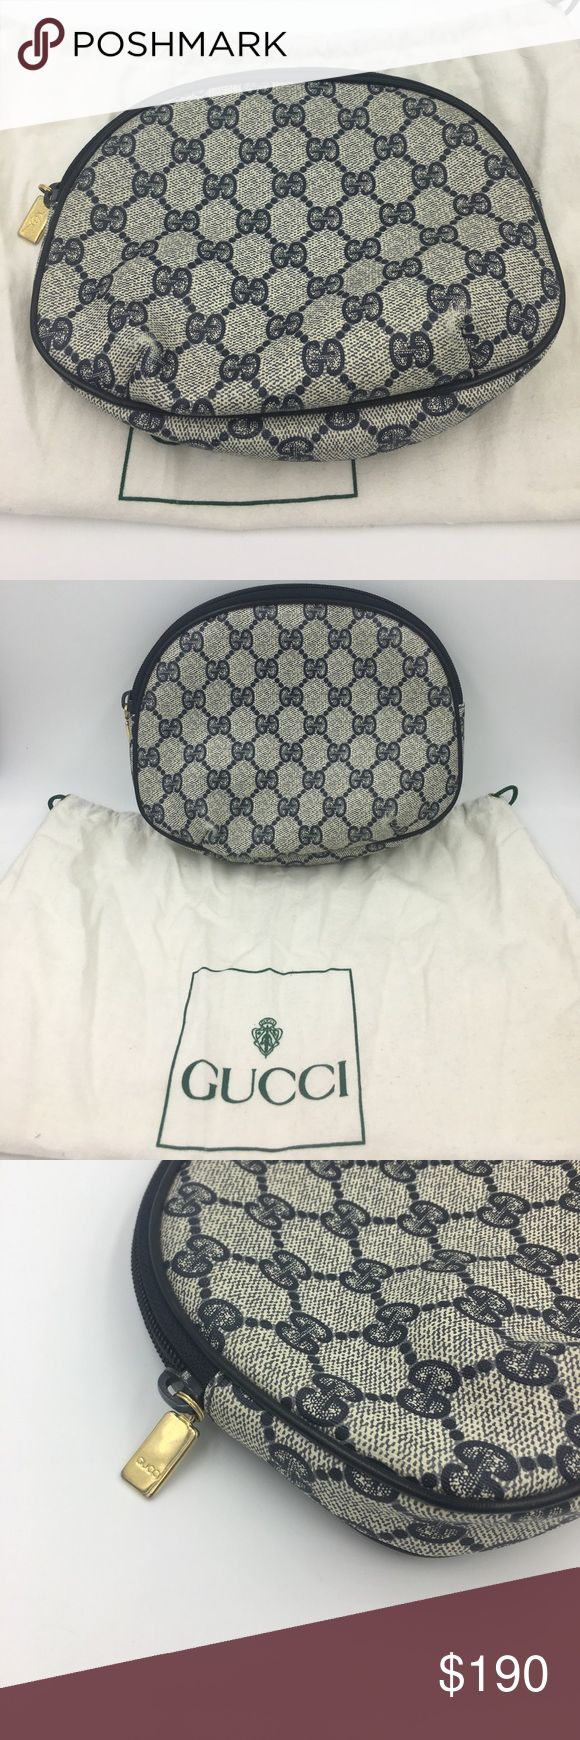 Authentic Gucci clutch/ makeup bag Gucci clutch, Vintage